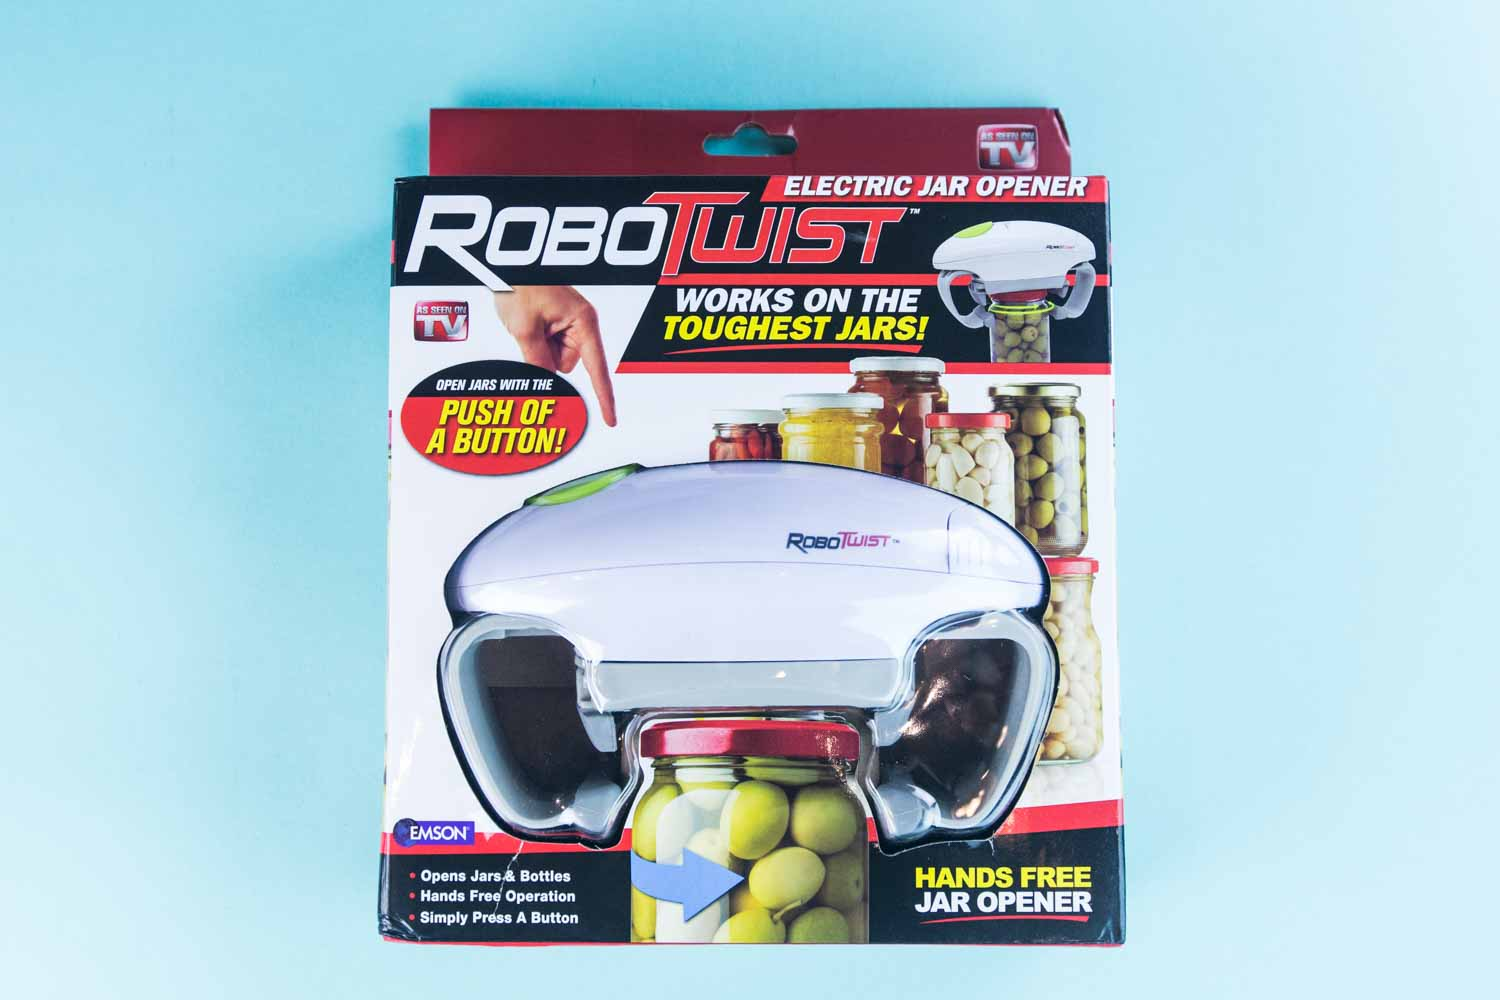 Robotwist Teardown